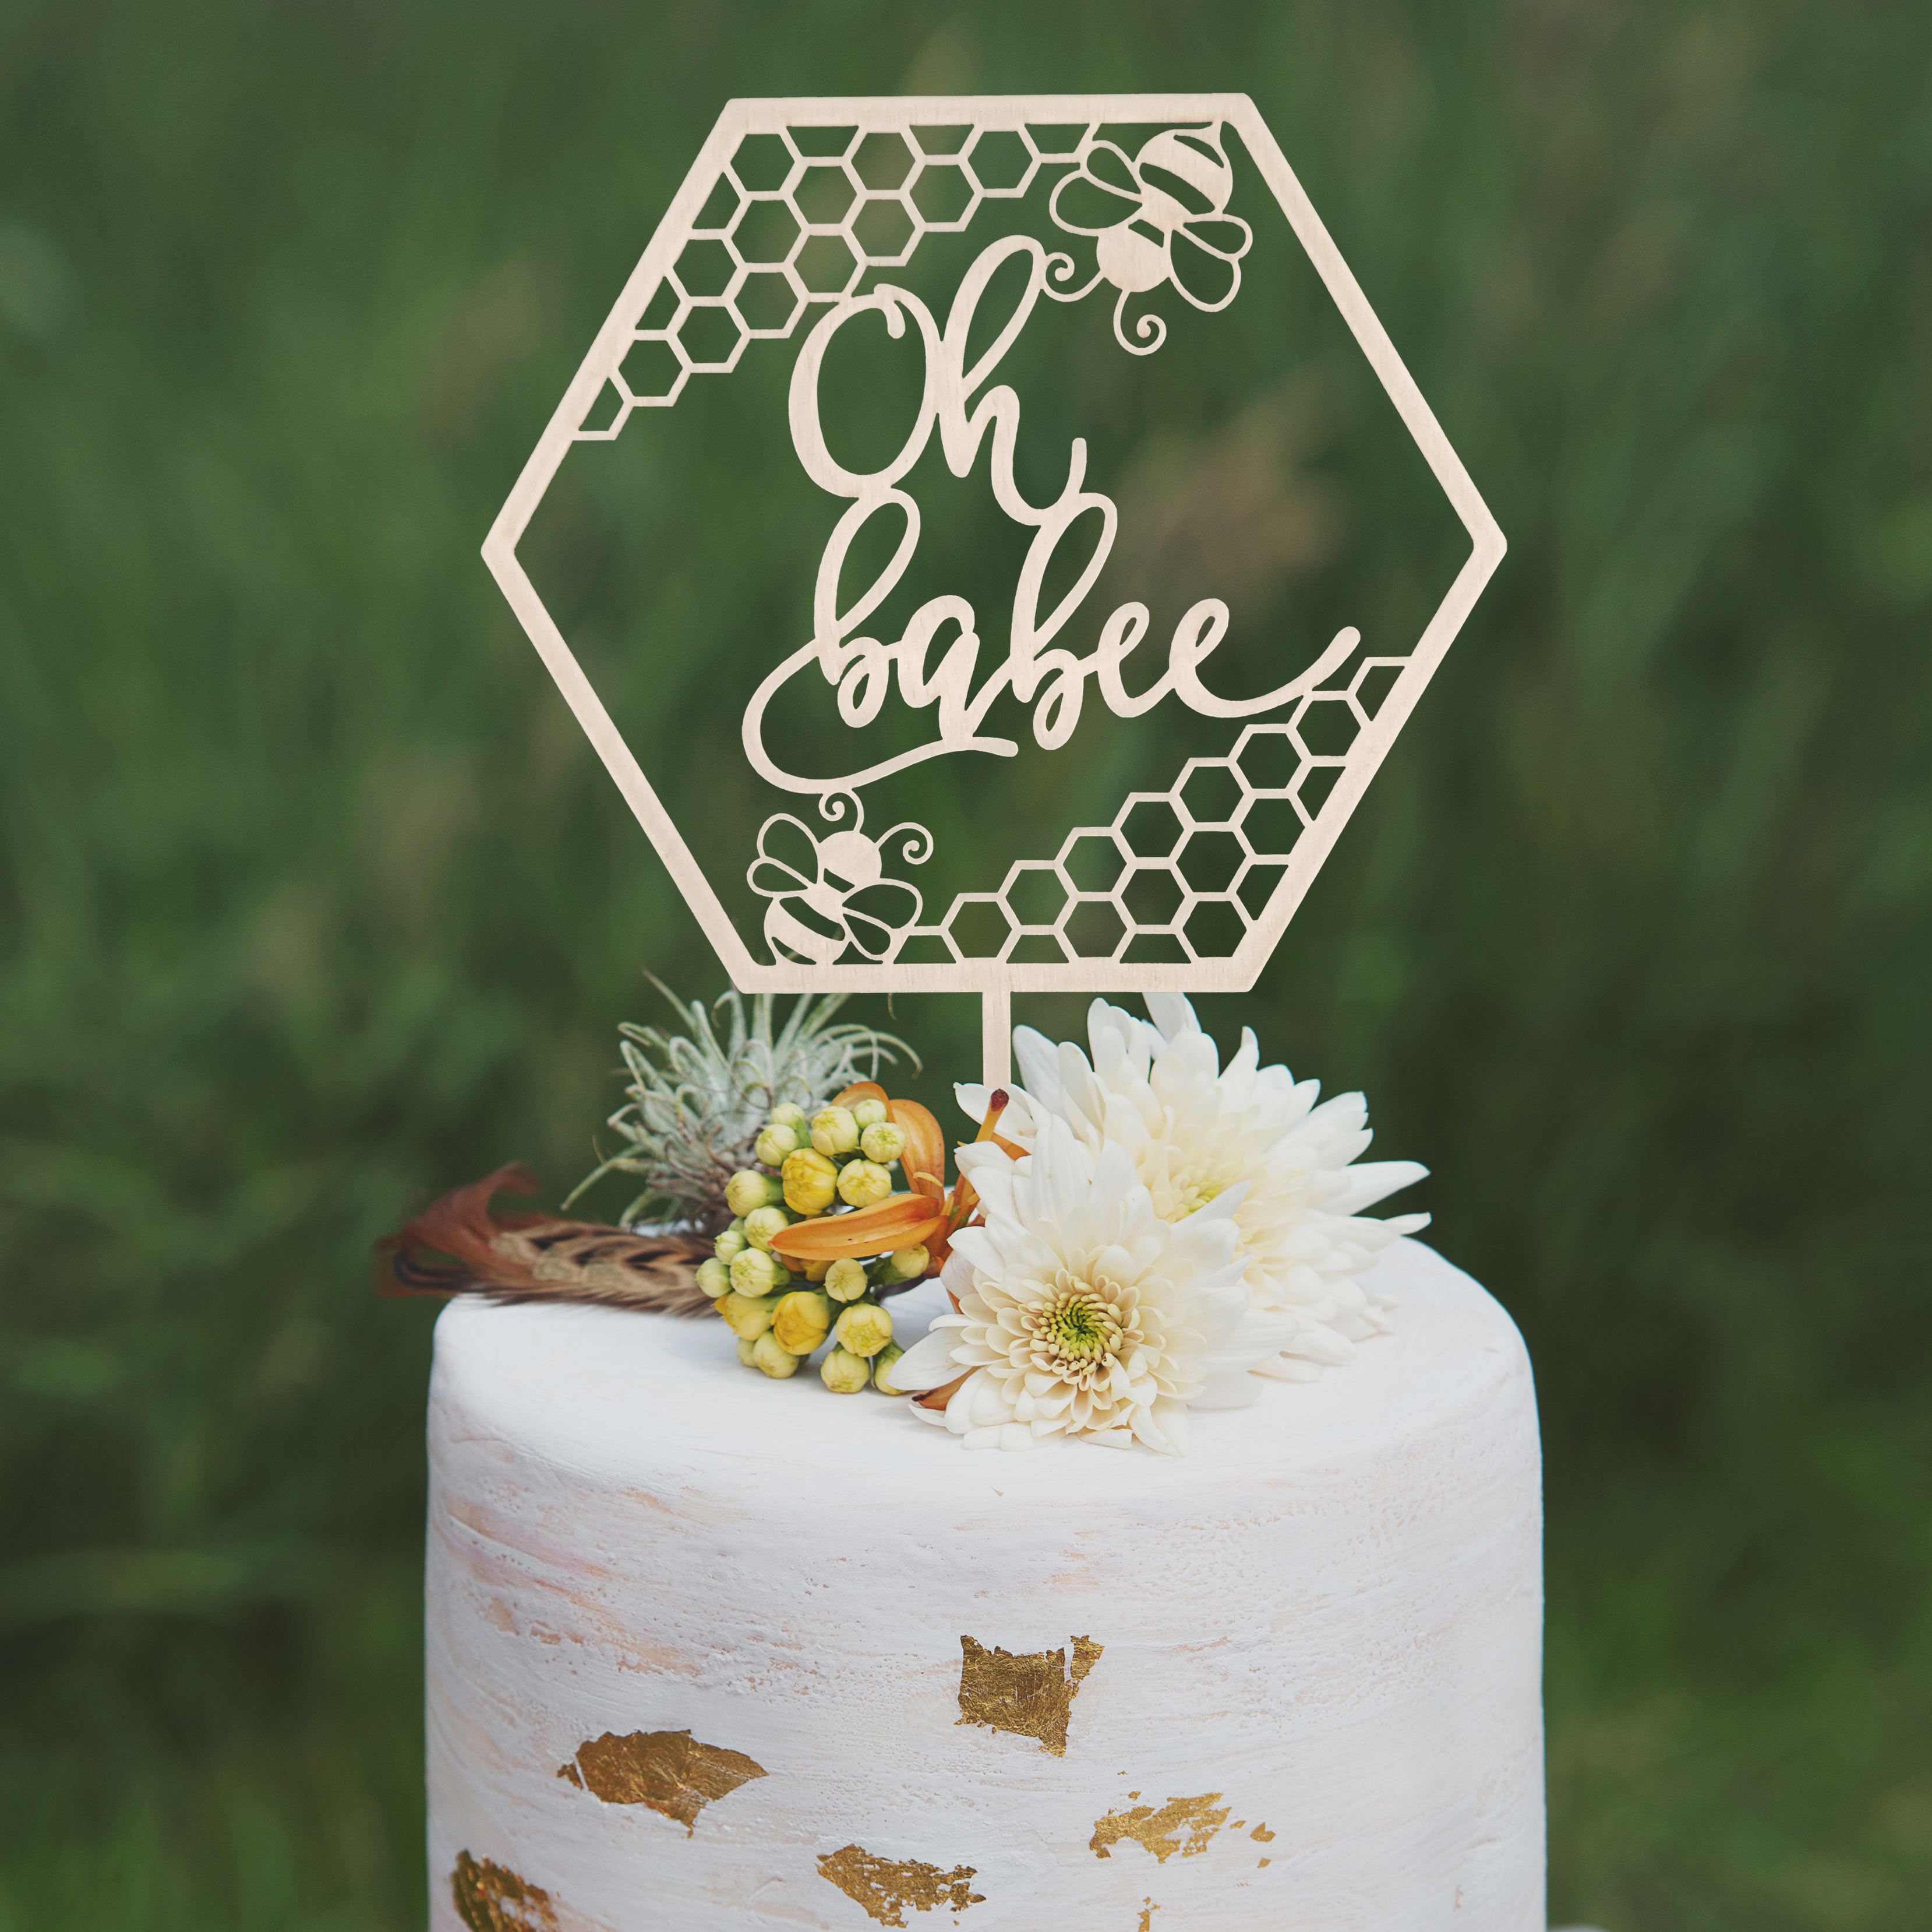 Oh Babee Cake topper by Thistle and Lace